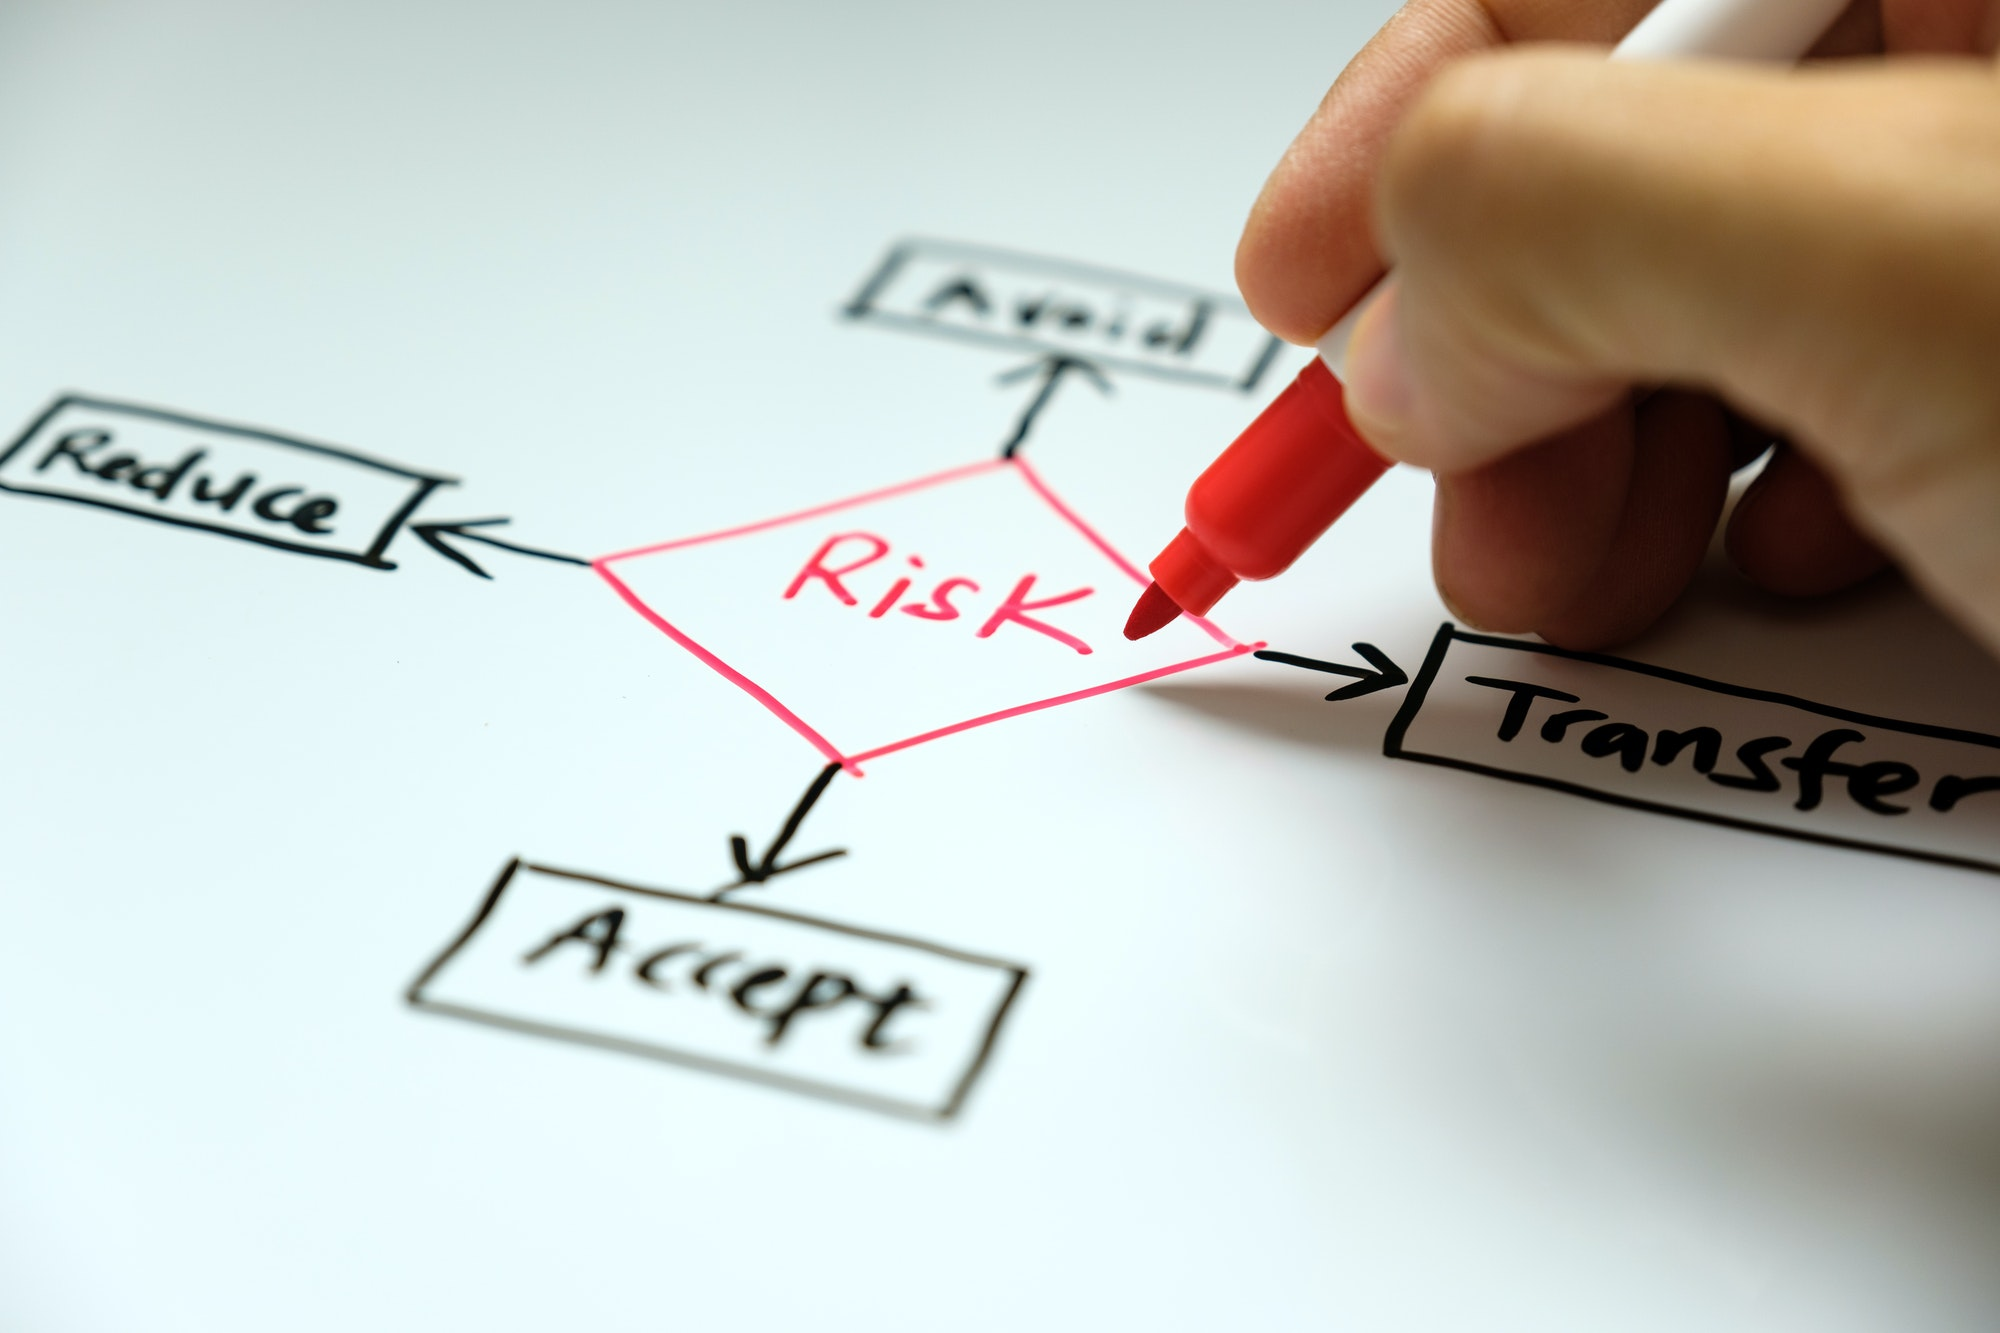 Risk management concept avoid, accept, reduce and transfer